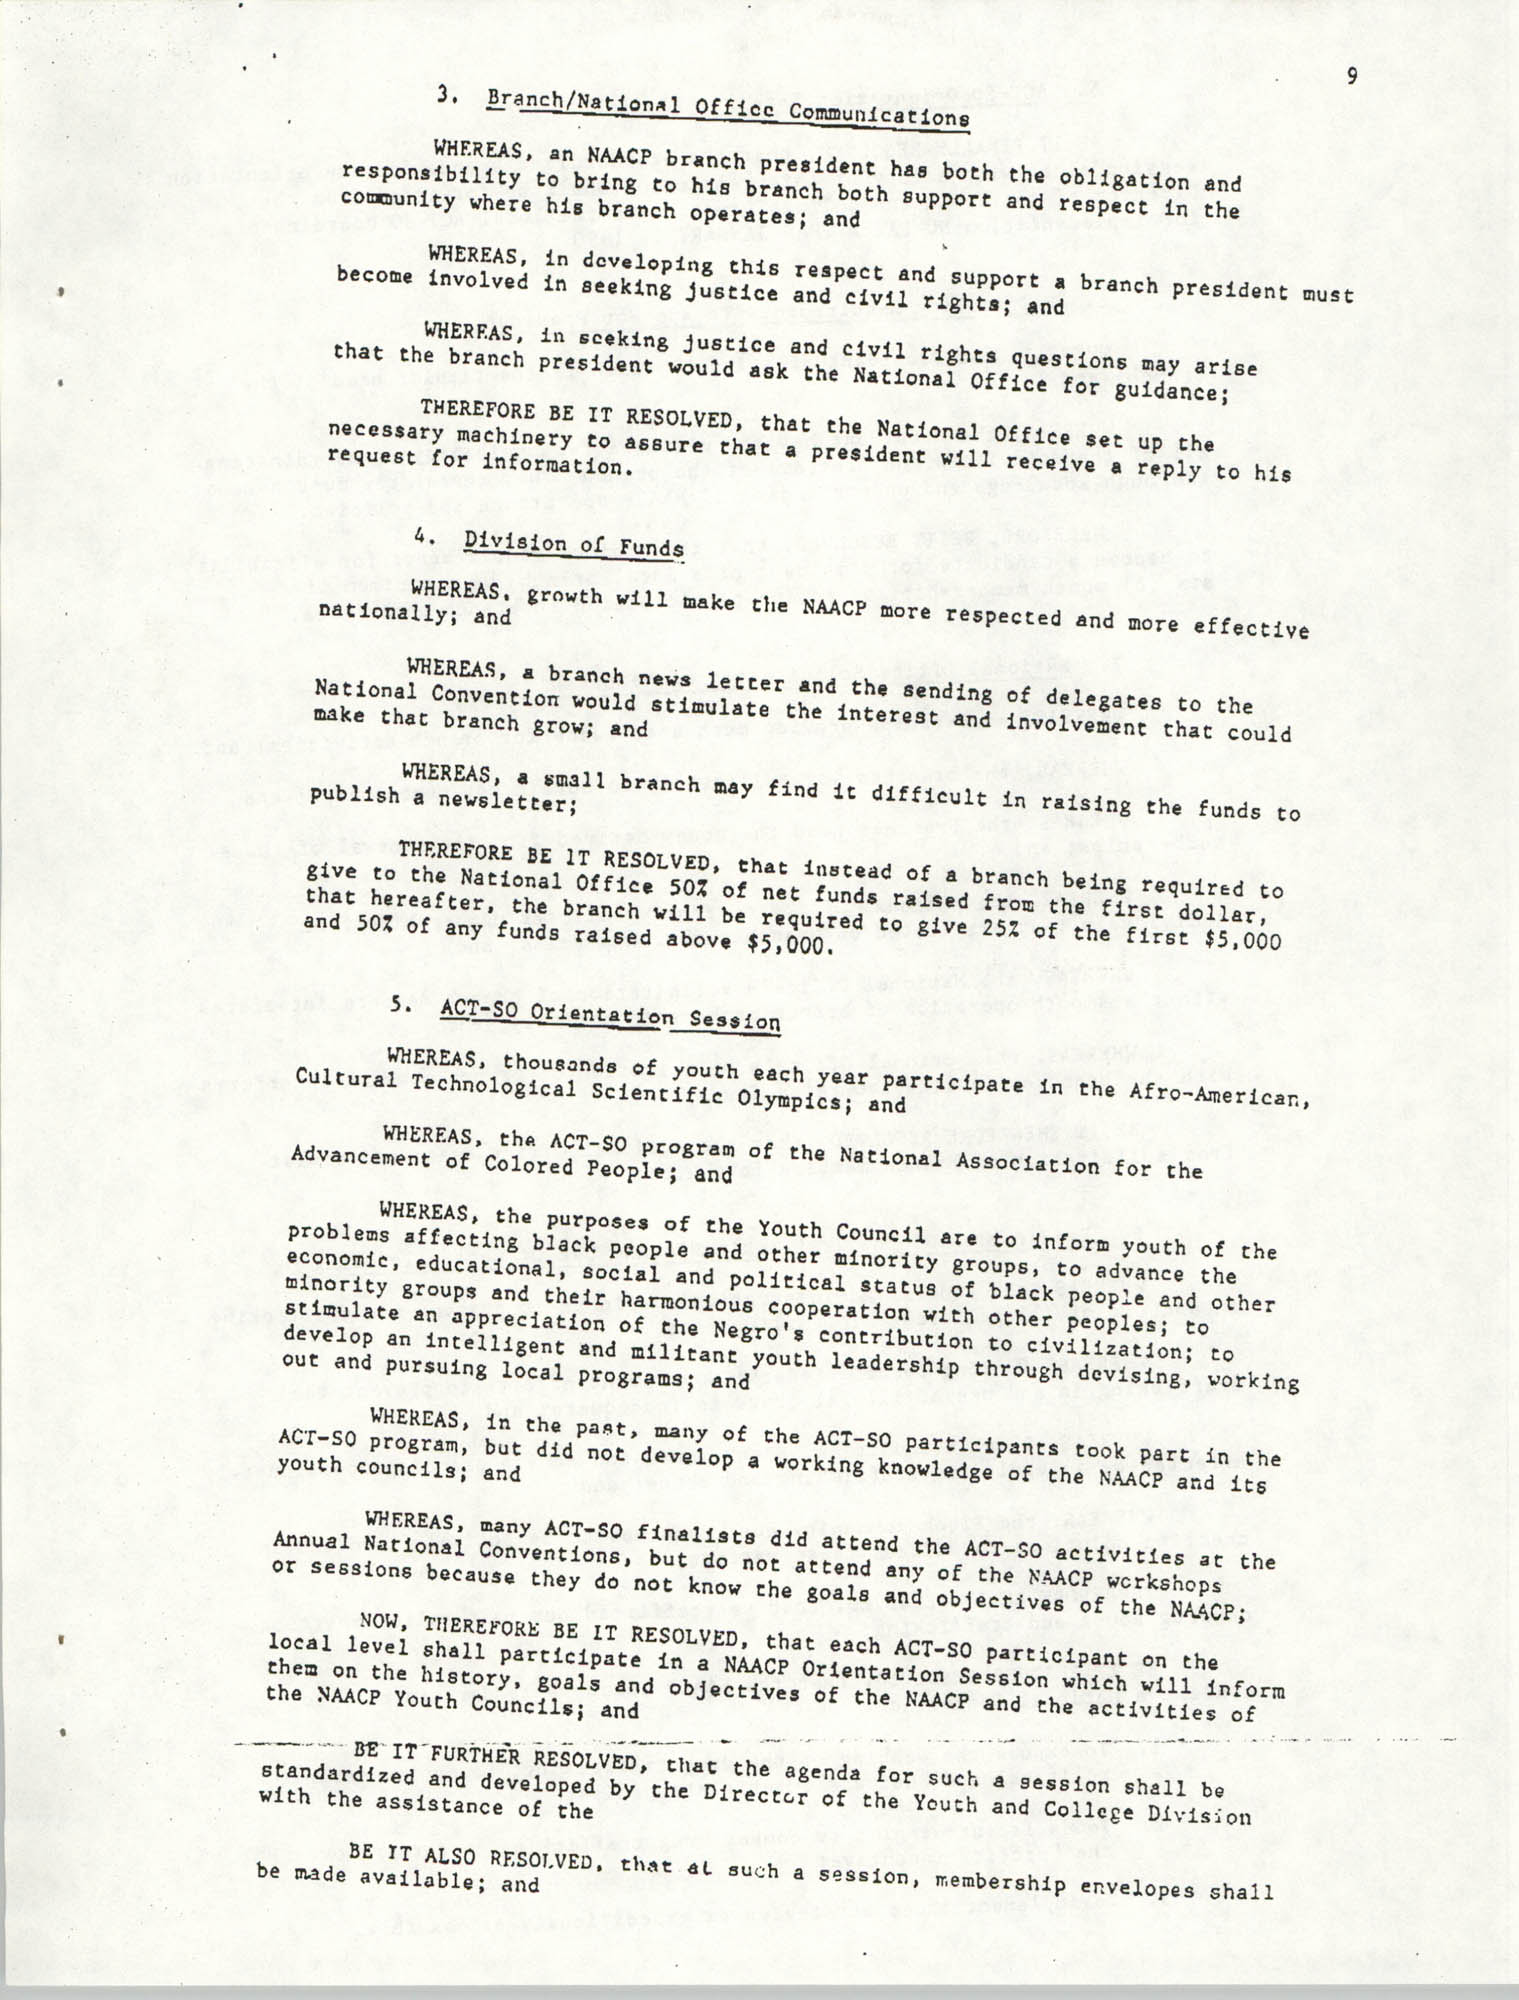 Resolutions Submitted Under Article X, Section 2 of the Constitution of the NAACP, Page 9